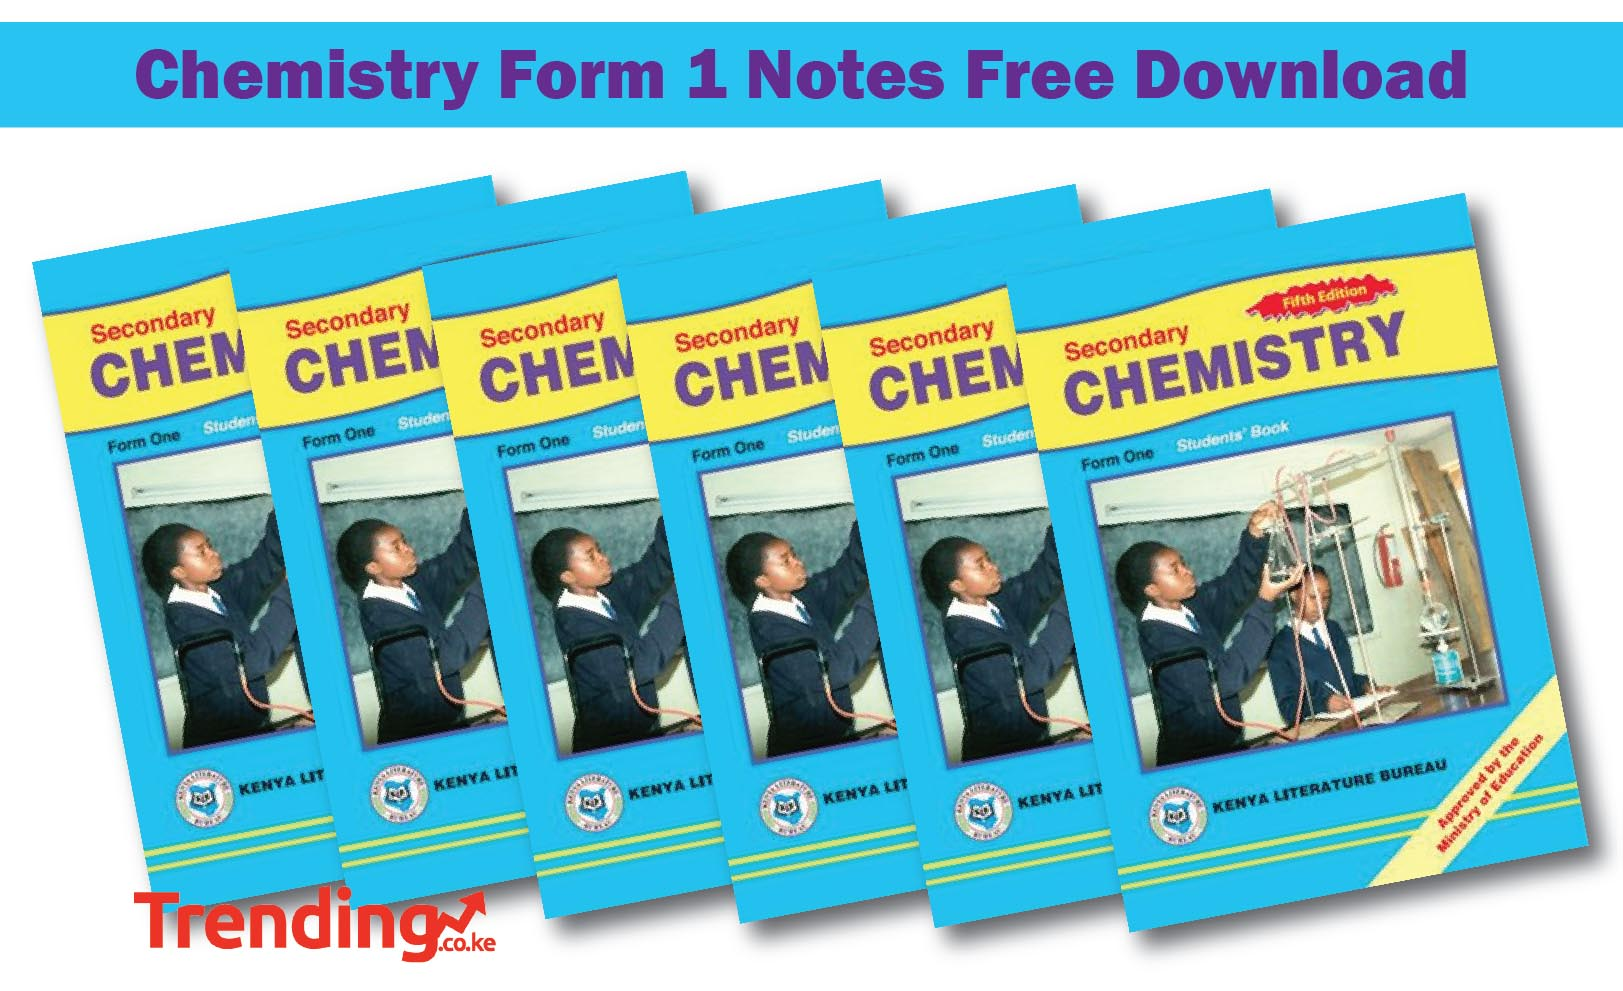 Chemistry Form 1 Notes Free Download » Trending co ke